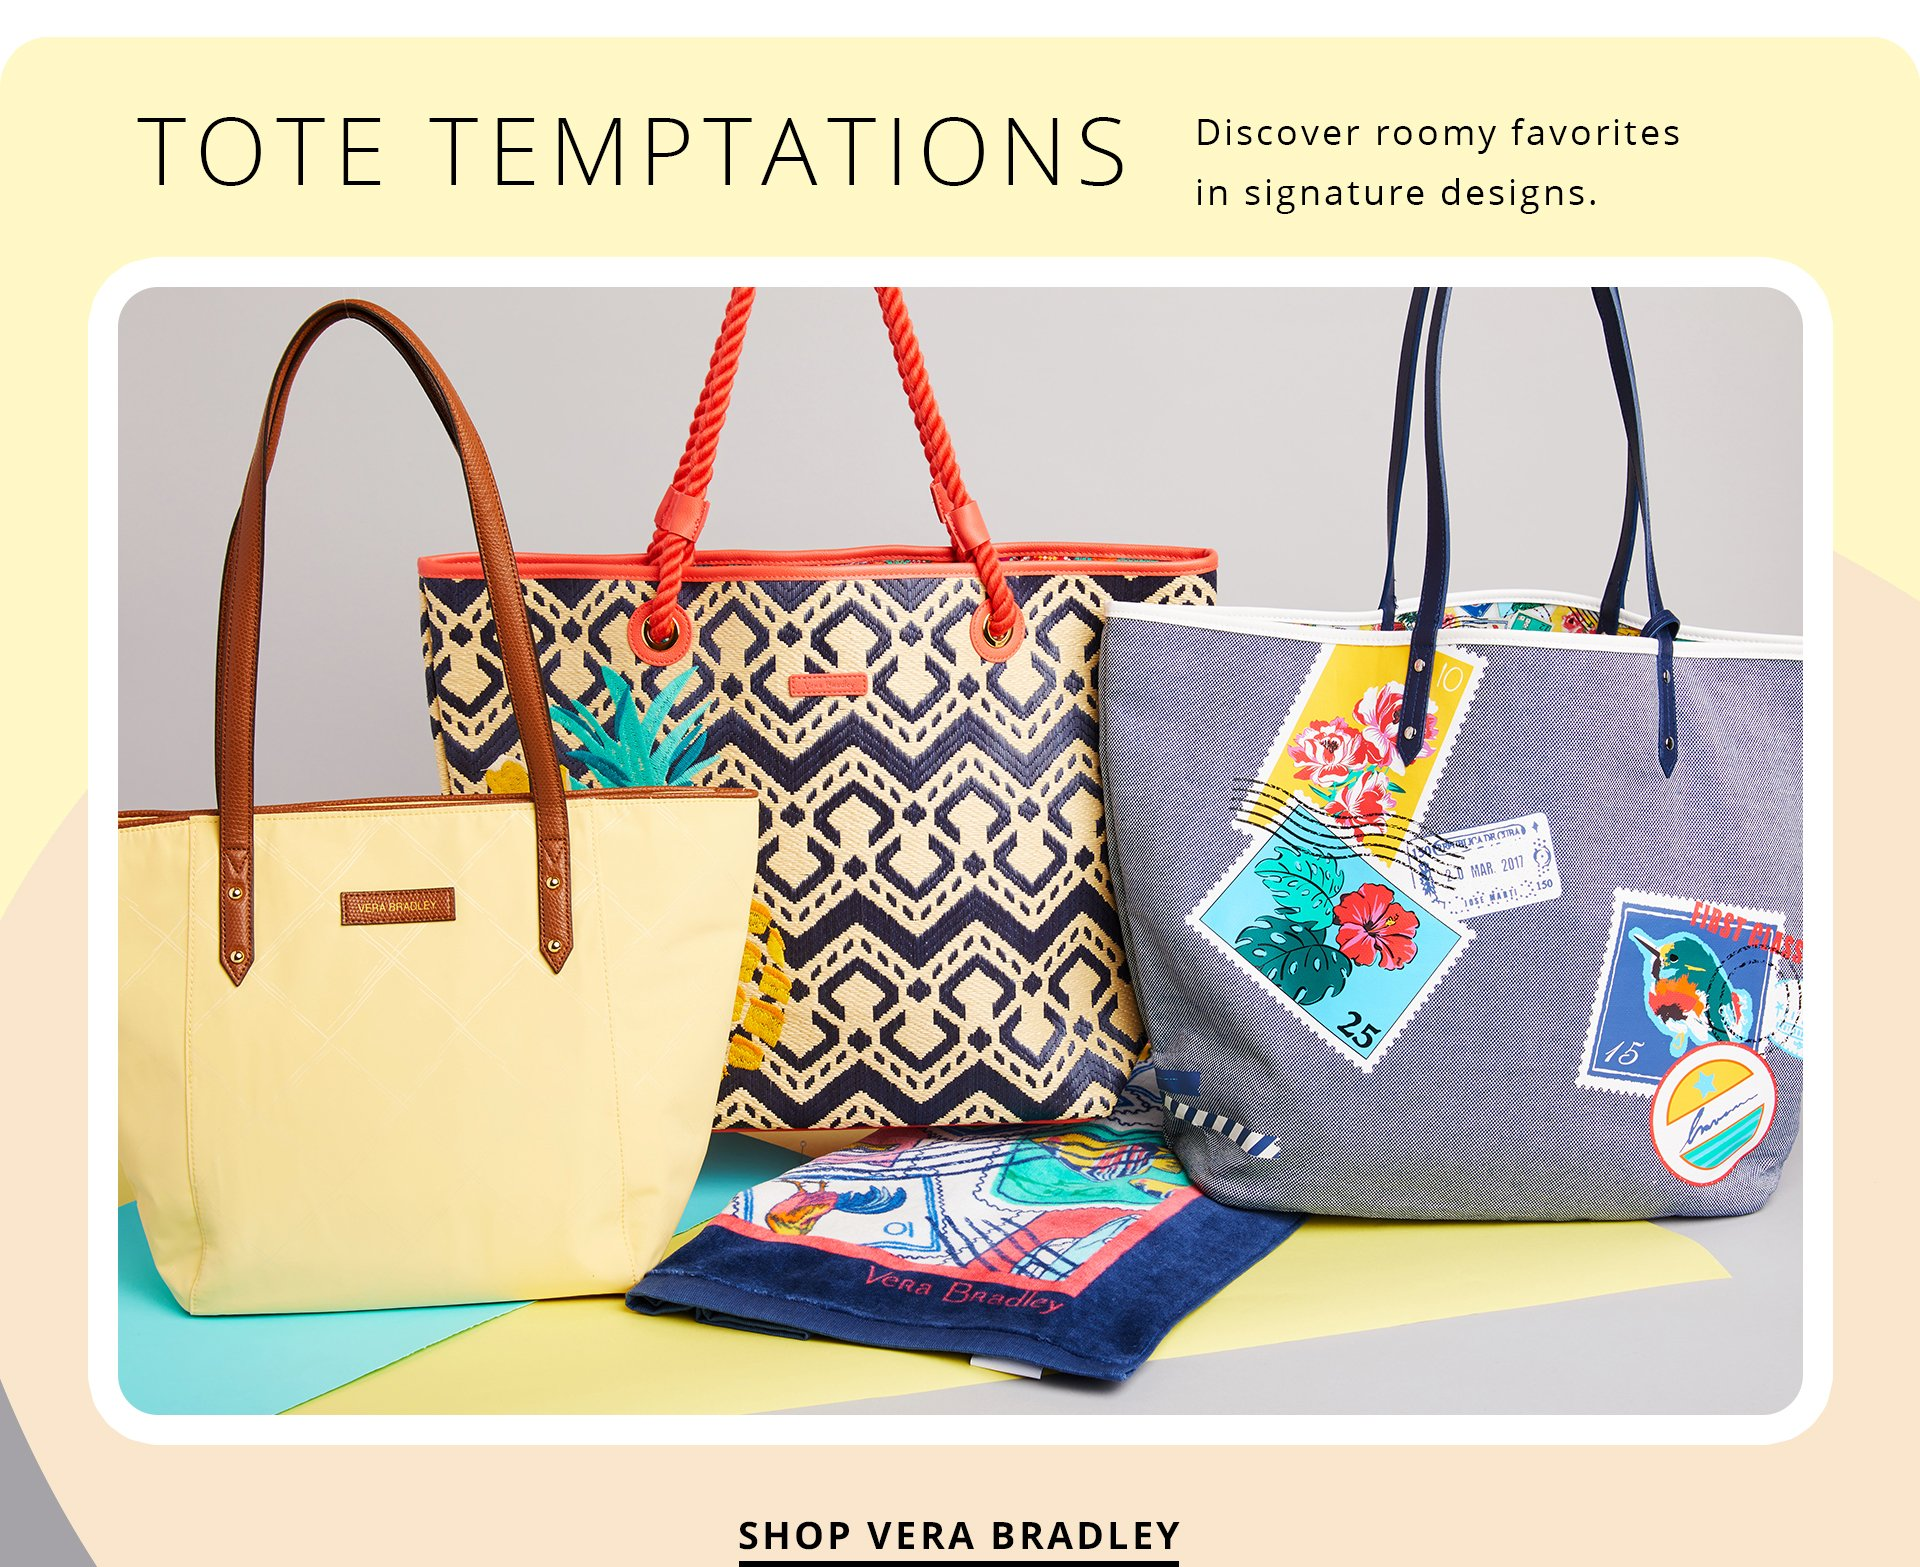 Tote Temptations: Discover roomy favorites in signature designs. Shop Vera Bradley